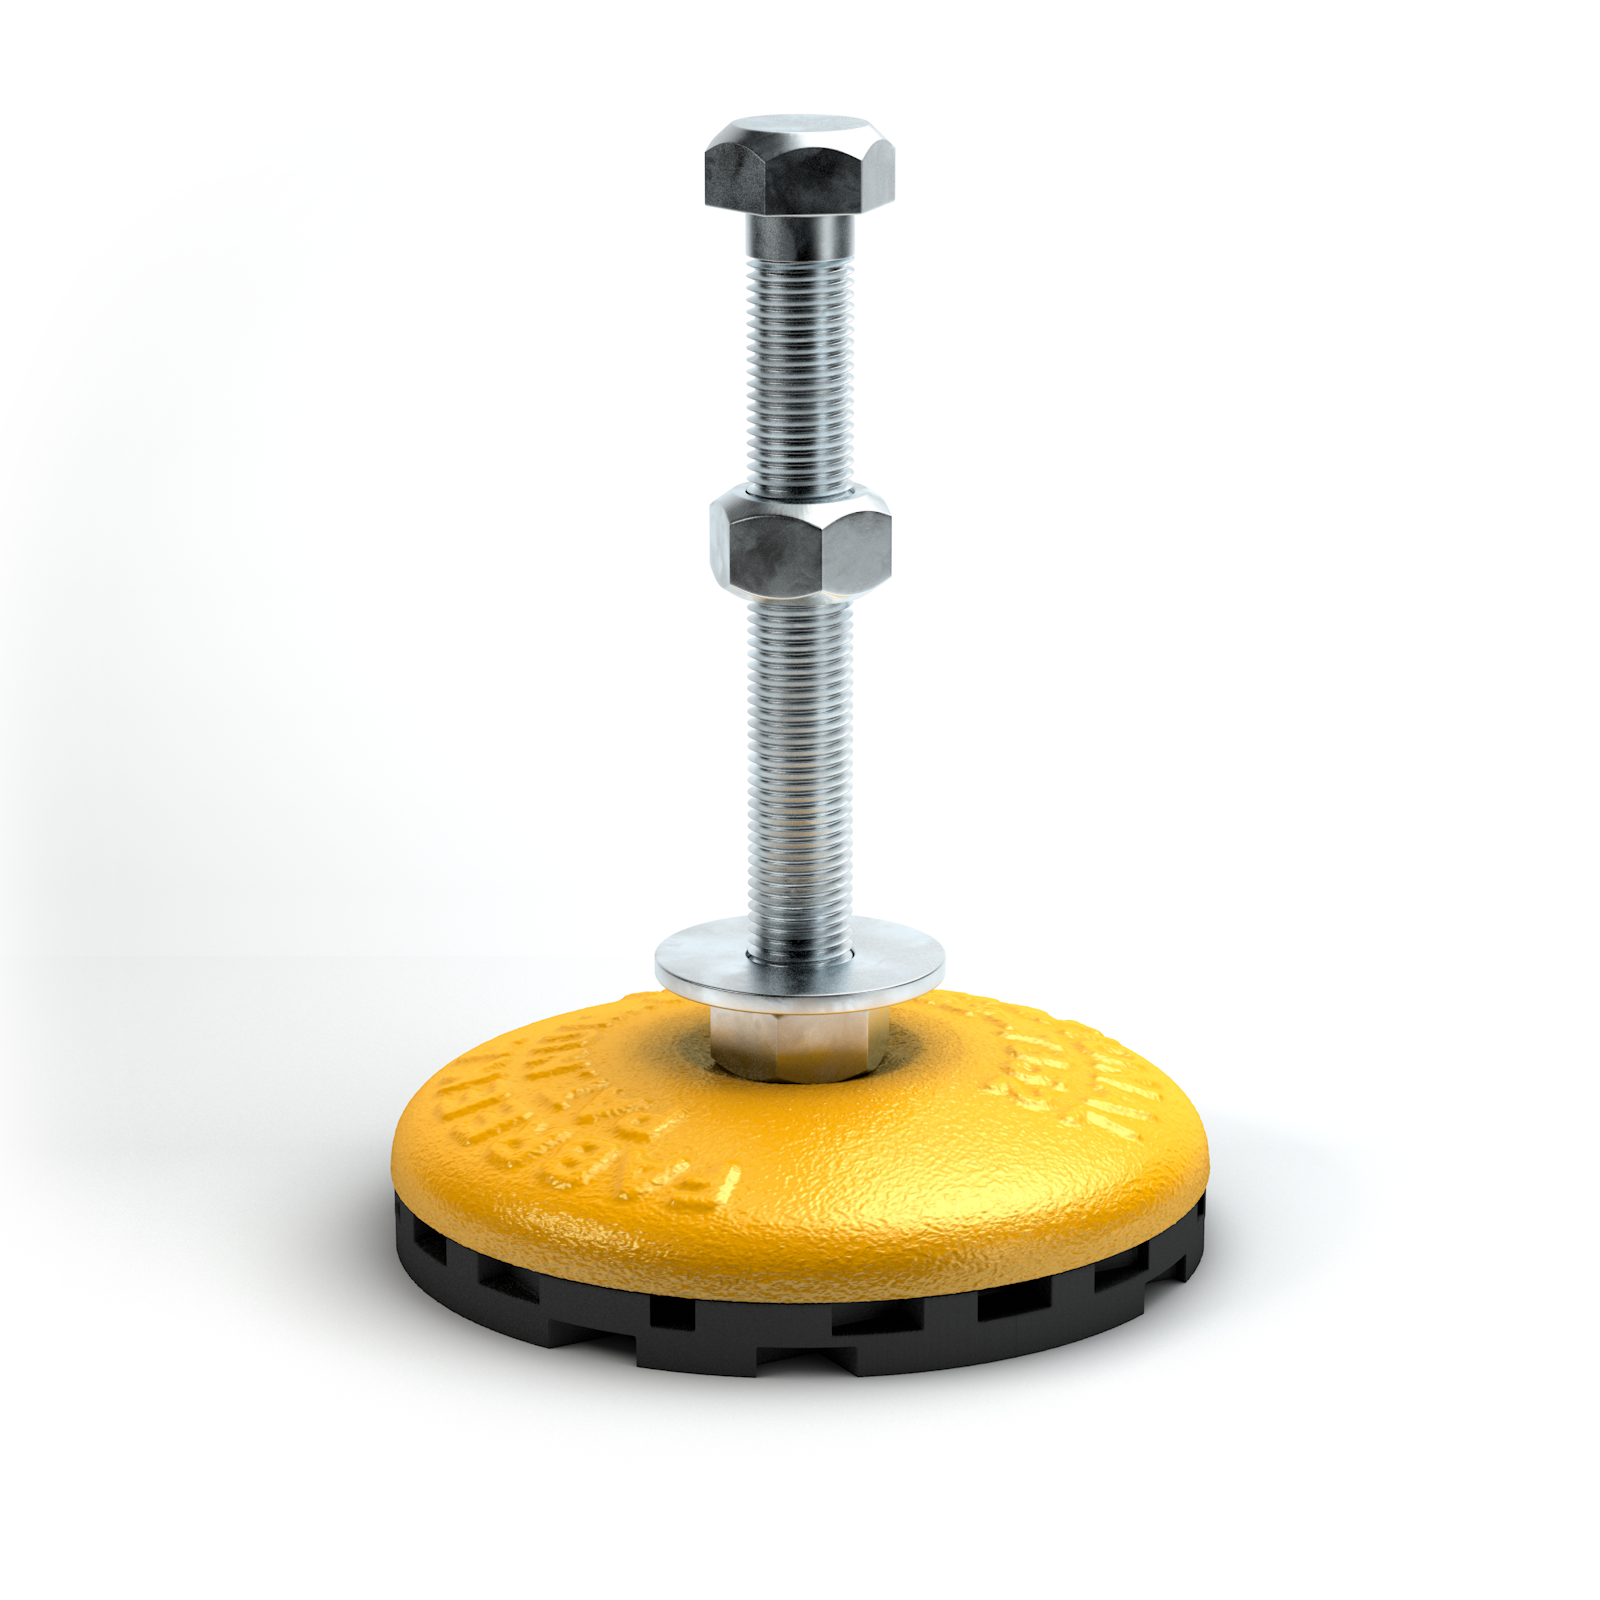 Fabcel Lev-L mounts are levelling mounts for machinery and equipment